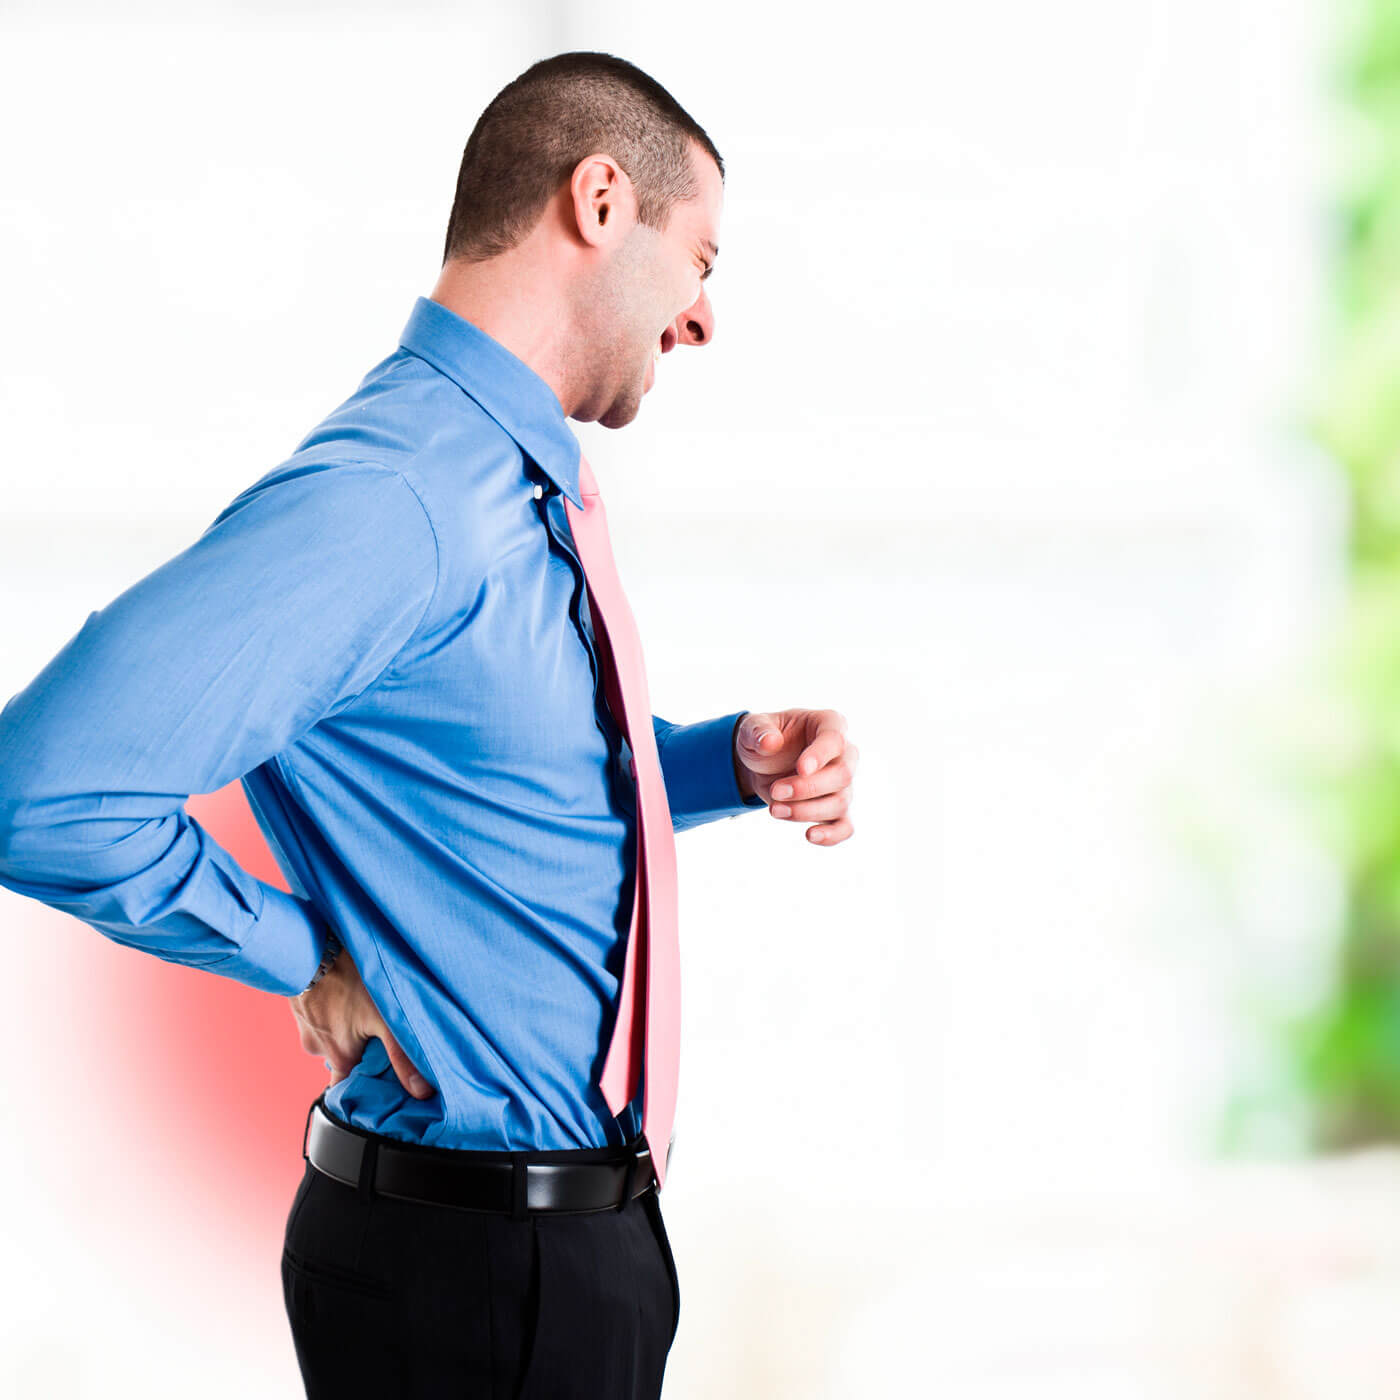 Essential Chiropractic and Healthcare Clinic - Chiropractic Conditions Sciatic Pain Treatment and Relief